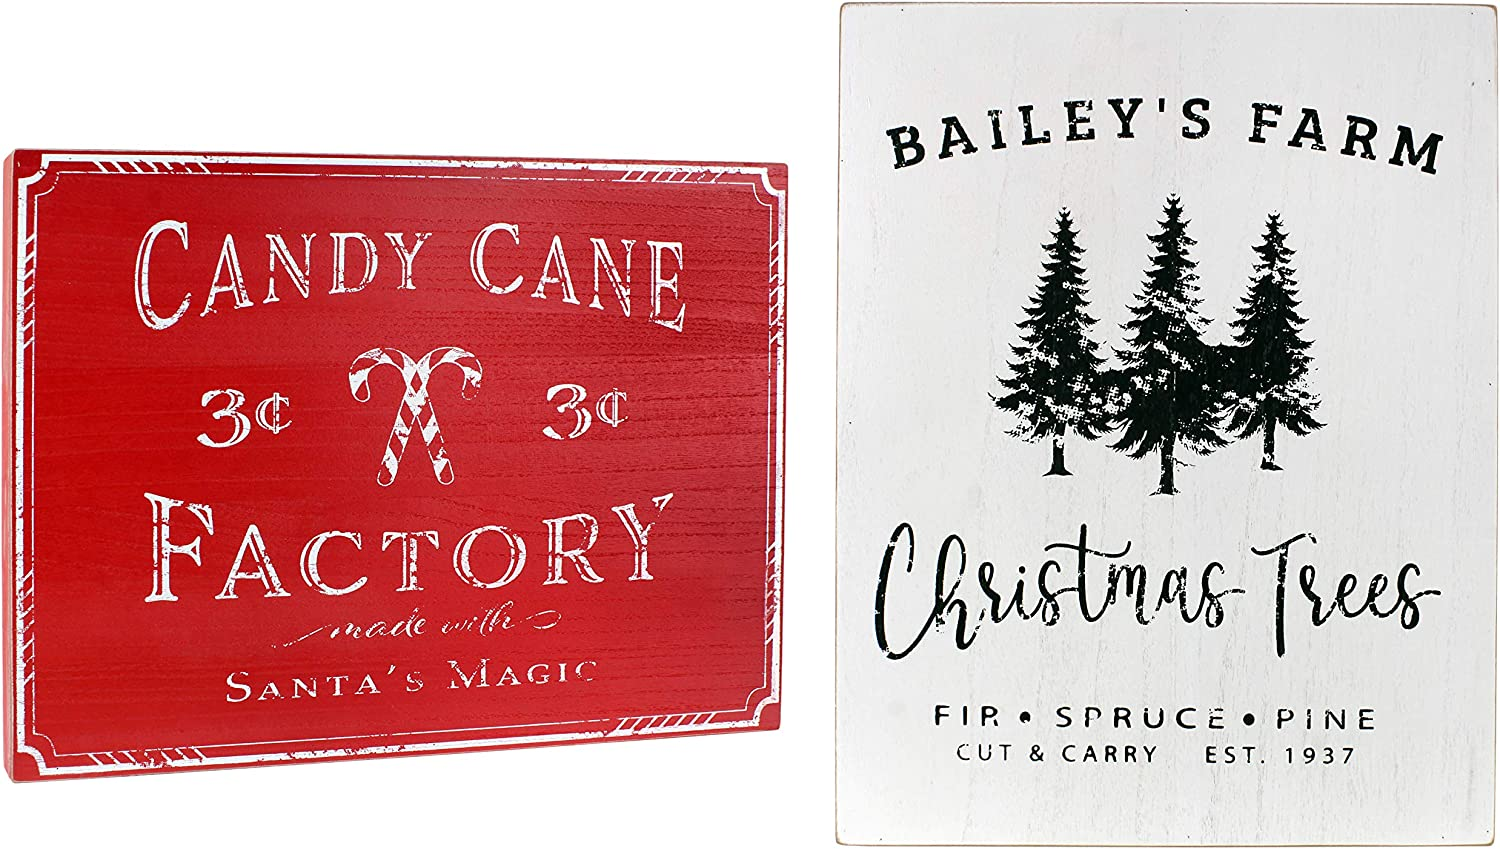 Auldhome Vintage Christmas Wall Art 2 Picture Set Farmhouse Style Wood Signs Christmas Tree Farm And Candy Cane Factory Holiday Wall Decor 17 X 13 Inches Large Pictures Amazon Ca Home Kitchen